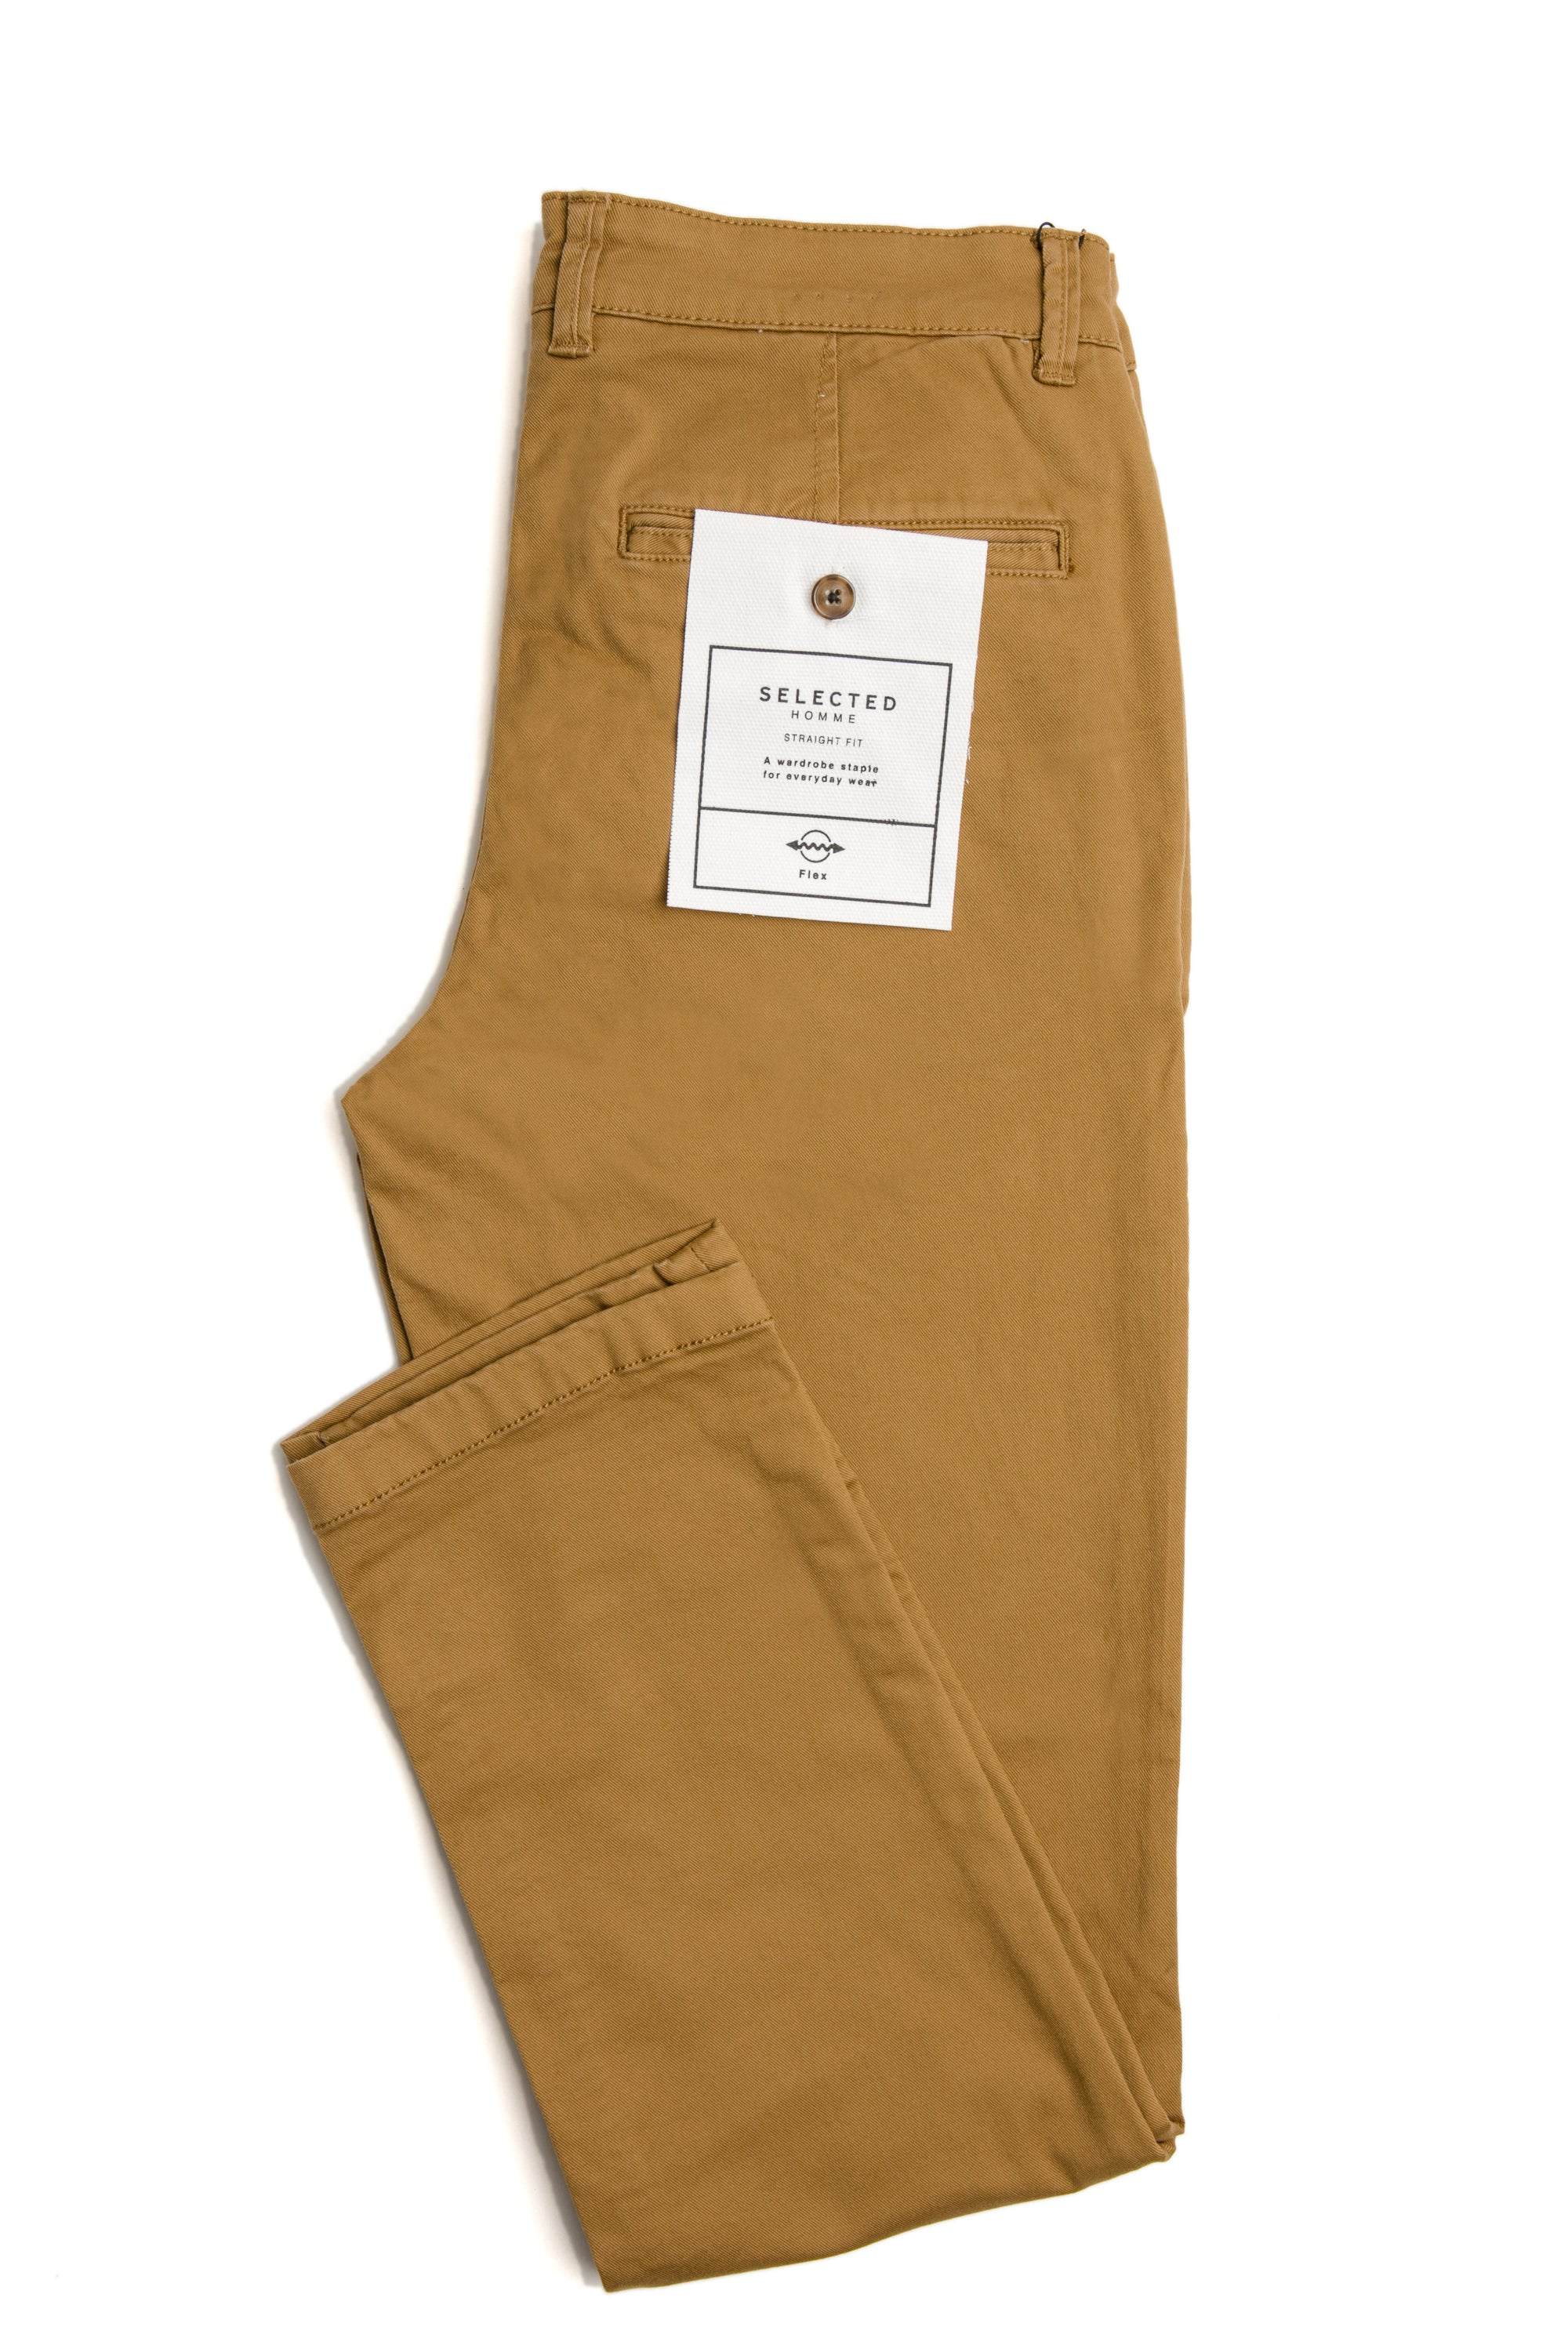 Selected Homme New Paris Chino